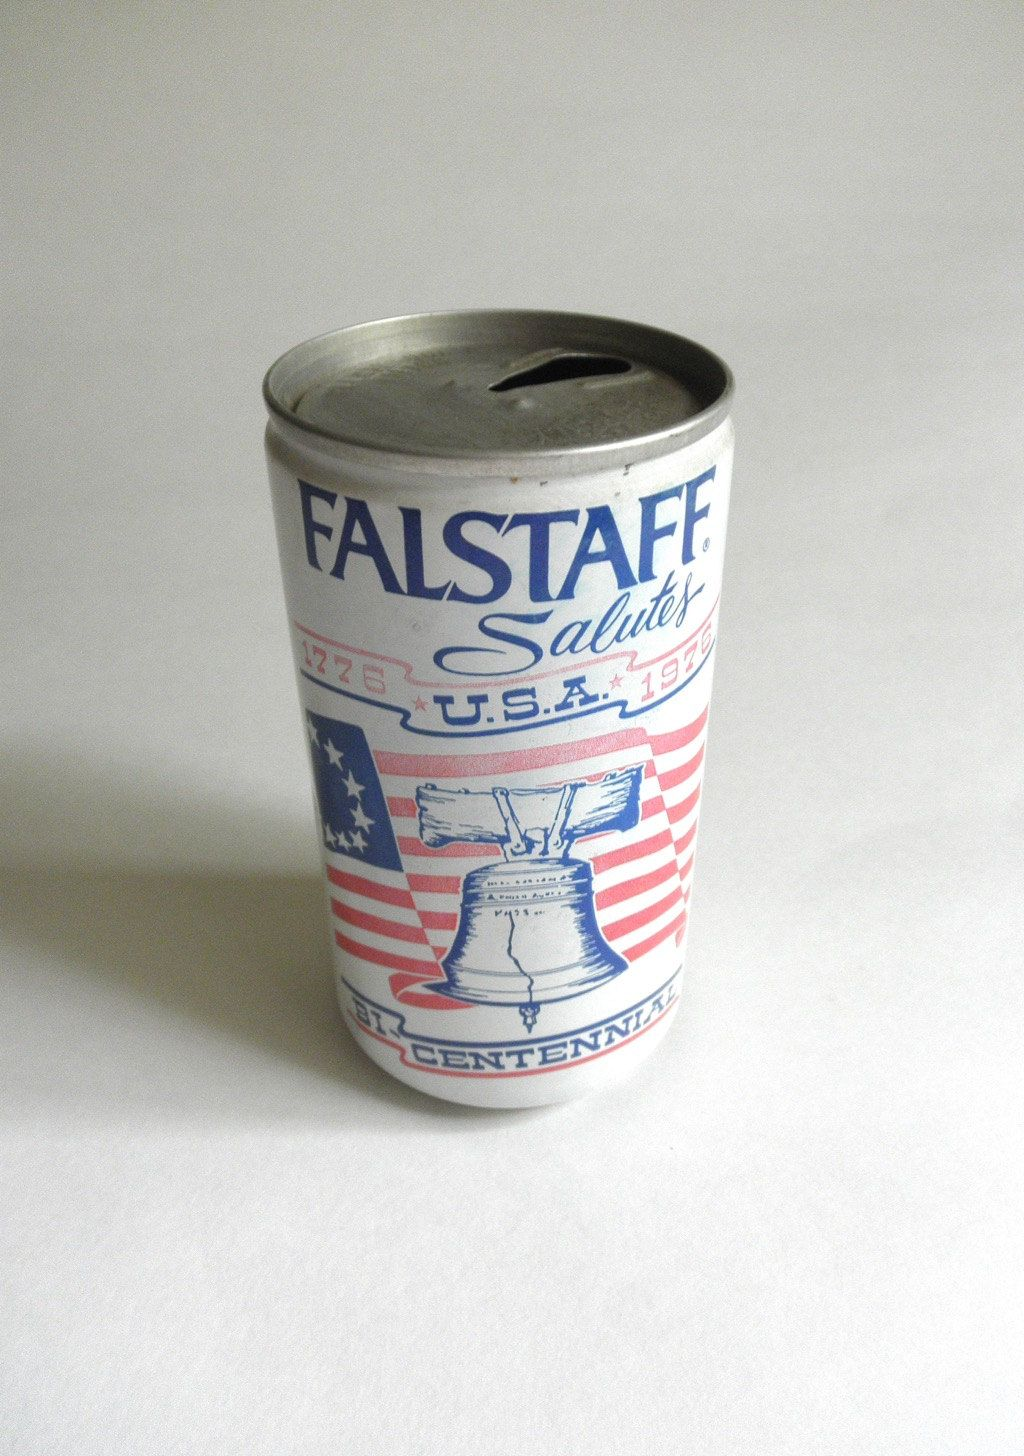 Vintage 1976 Falstaff Beer Can Pull Tab Red White and Blue Bicentennial General Brewing Co 4th of July Party Jackpot Jen by JackpotJen on Etsy